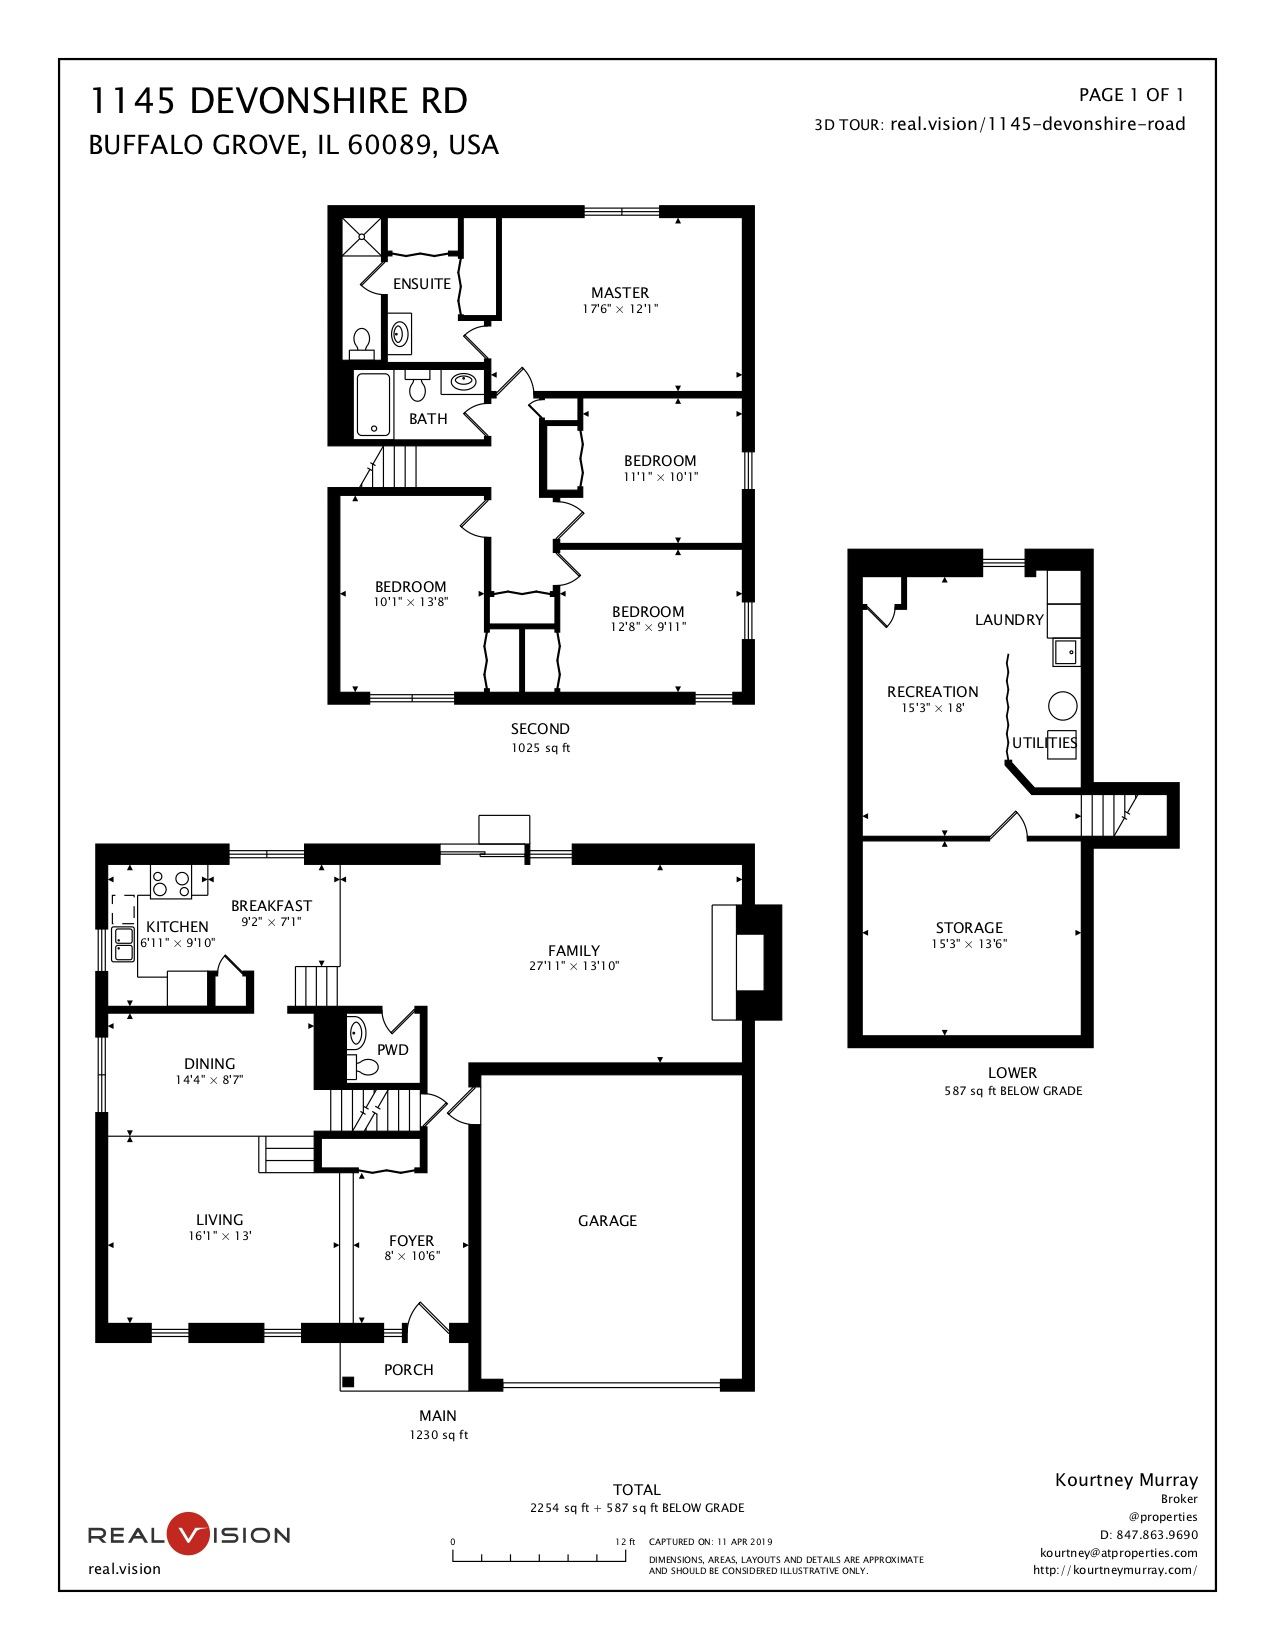 1145-devonshire-road-buffalo-grove-floor-plan.jpg